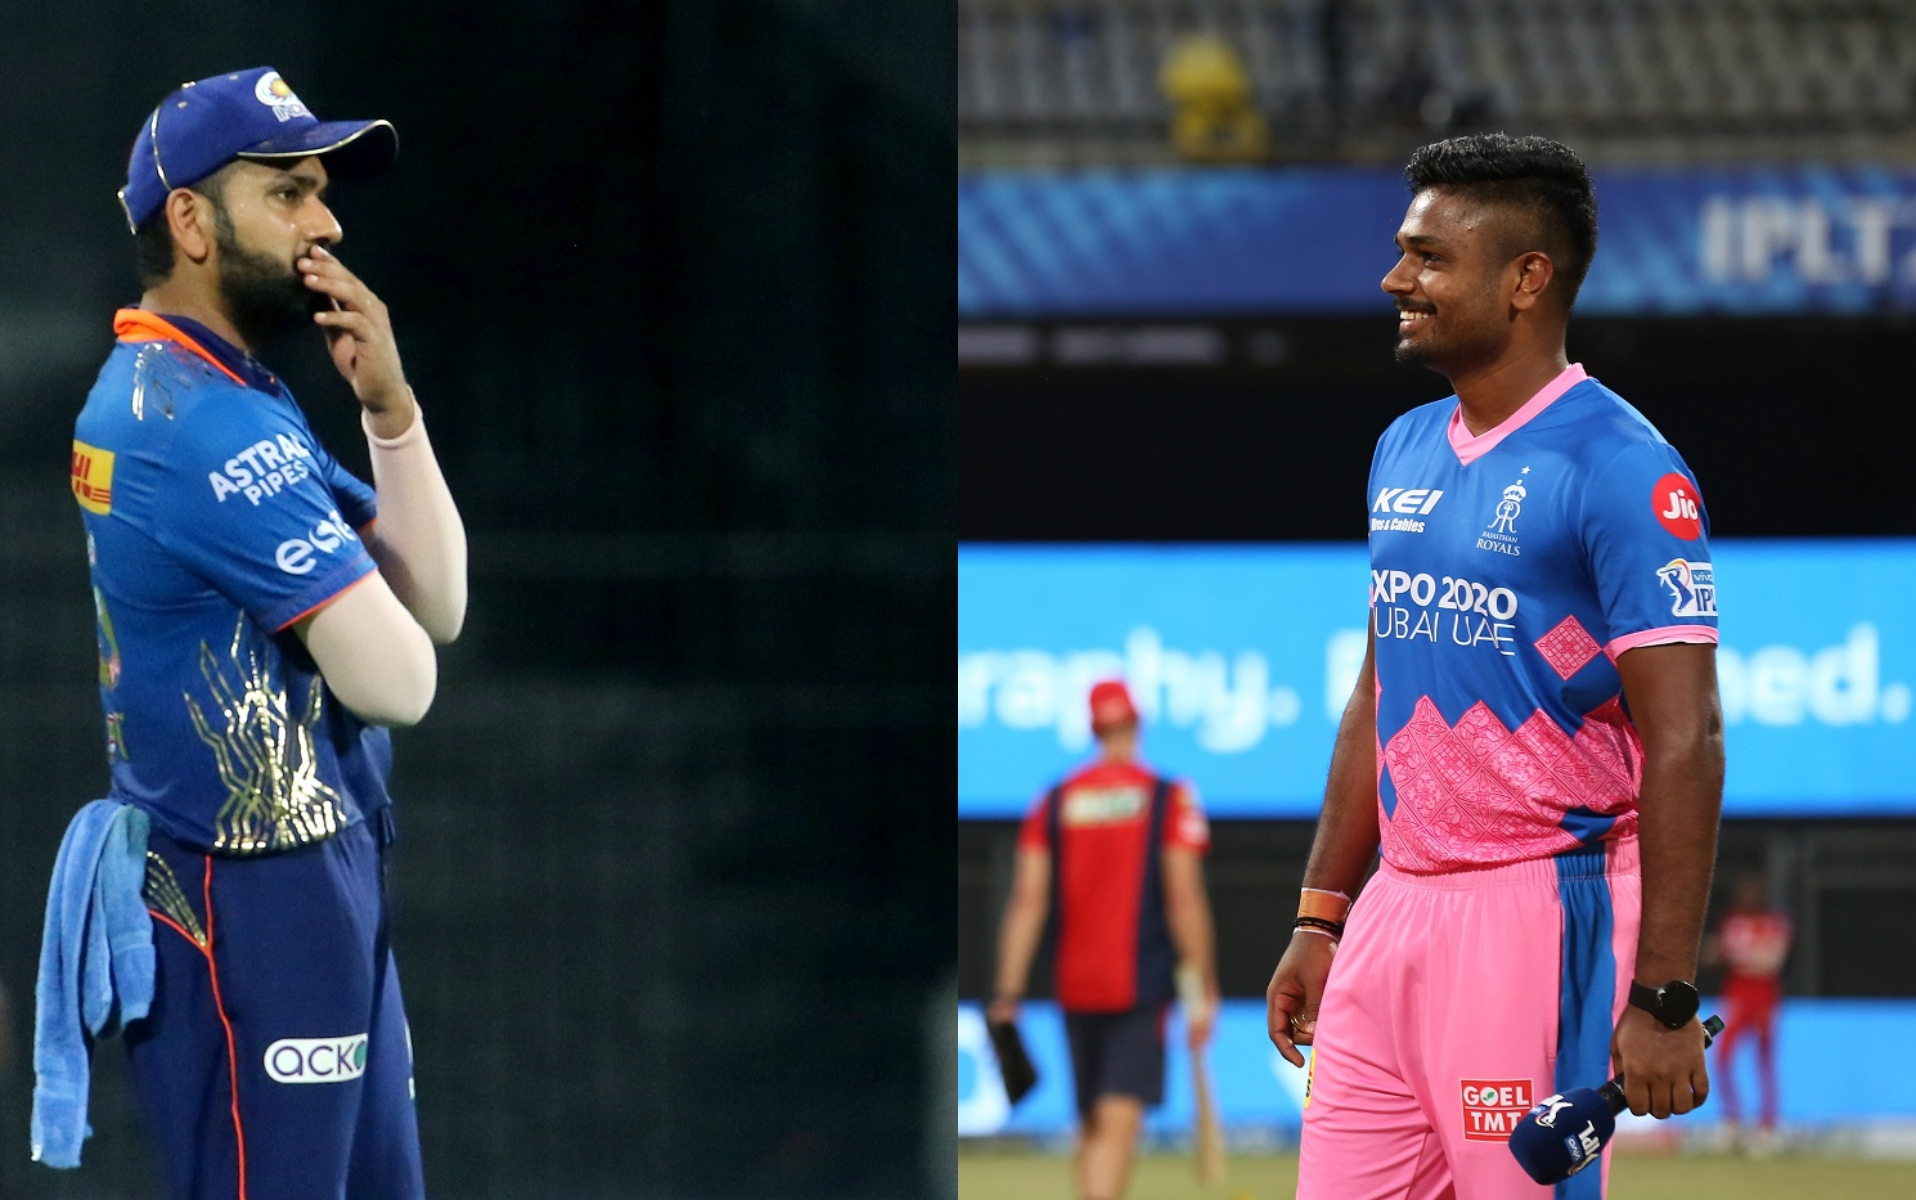 MI lost their last match to PBKS, while RR defeated KKR in their previous encounter | BCCI-IPL